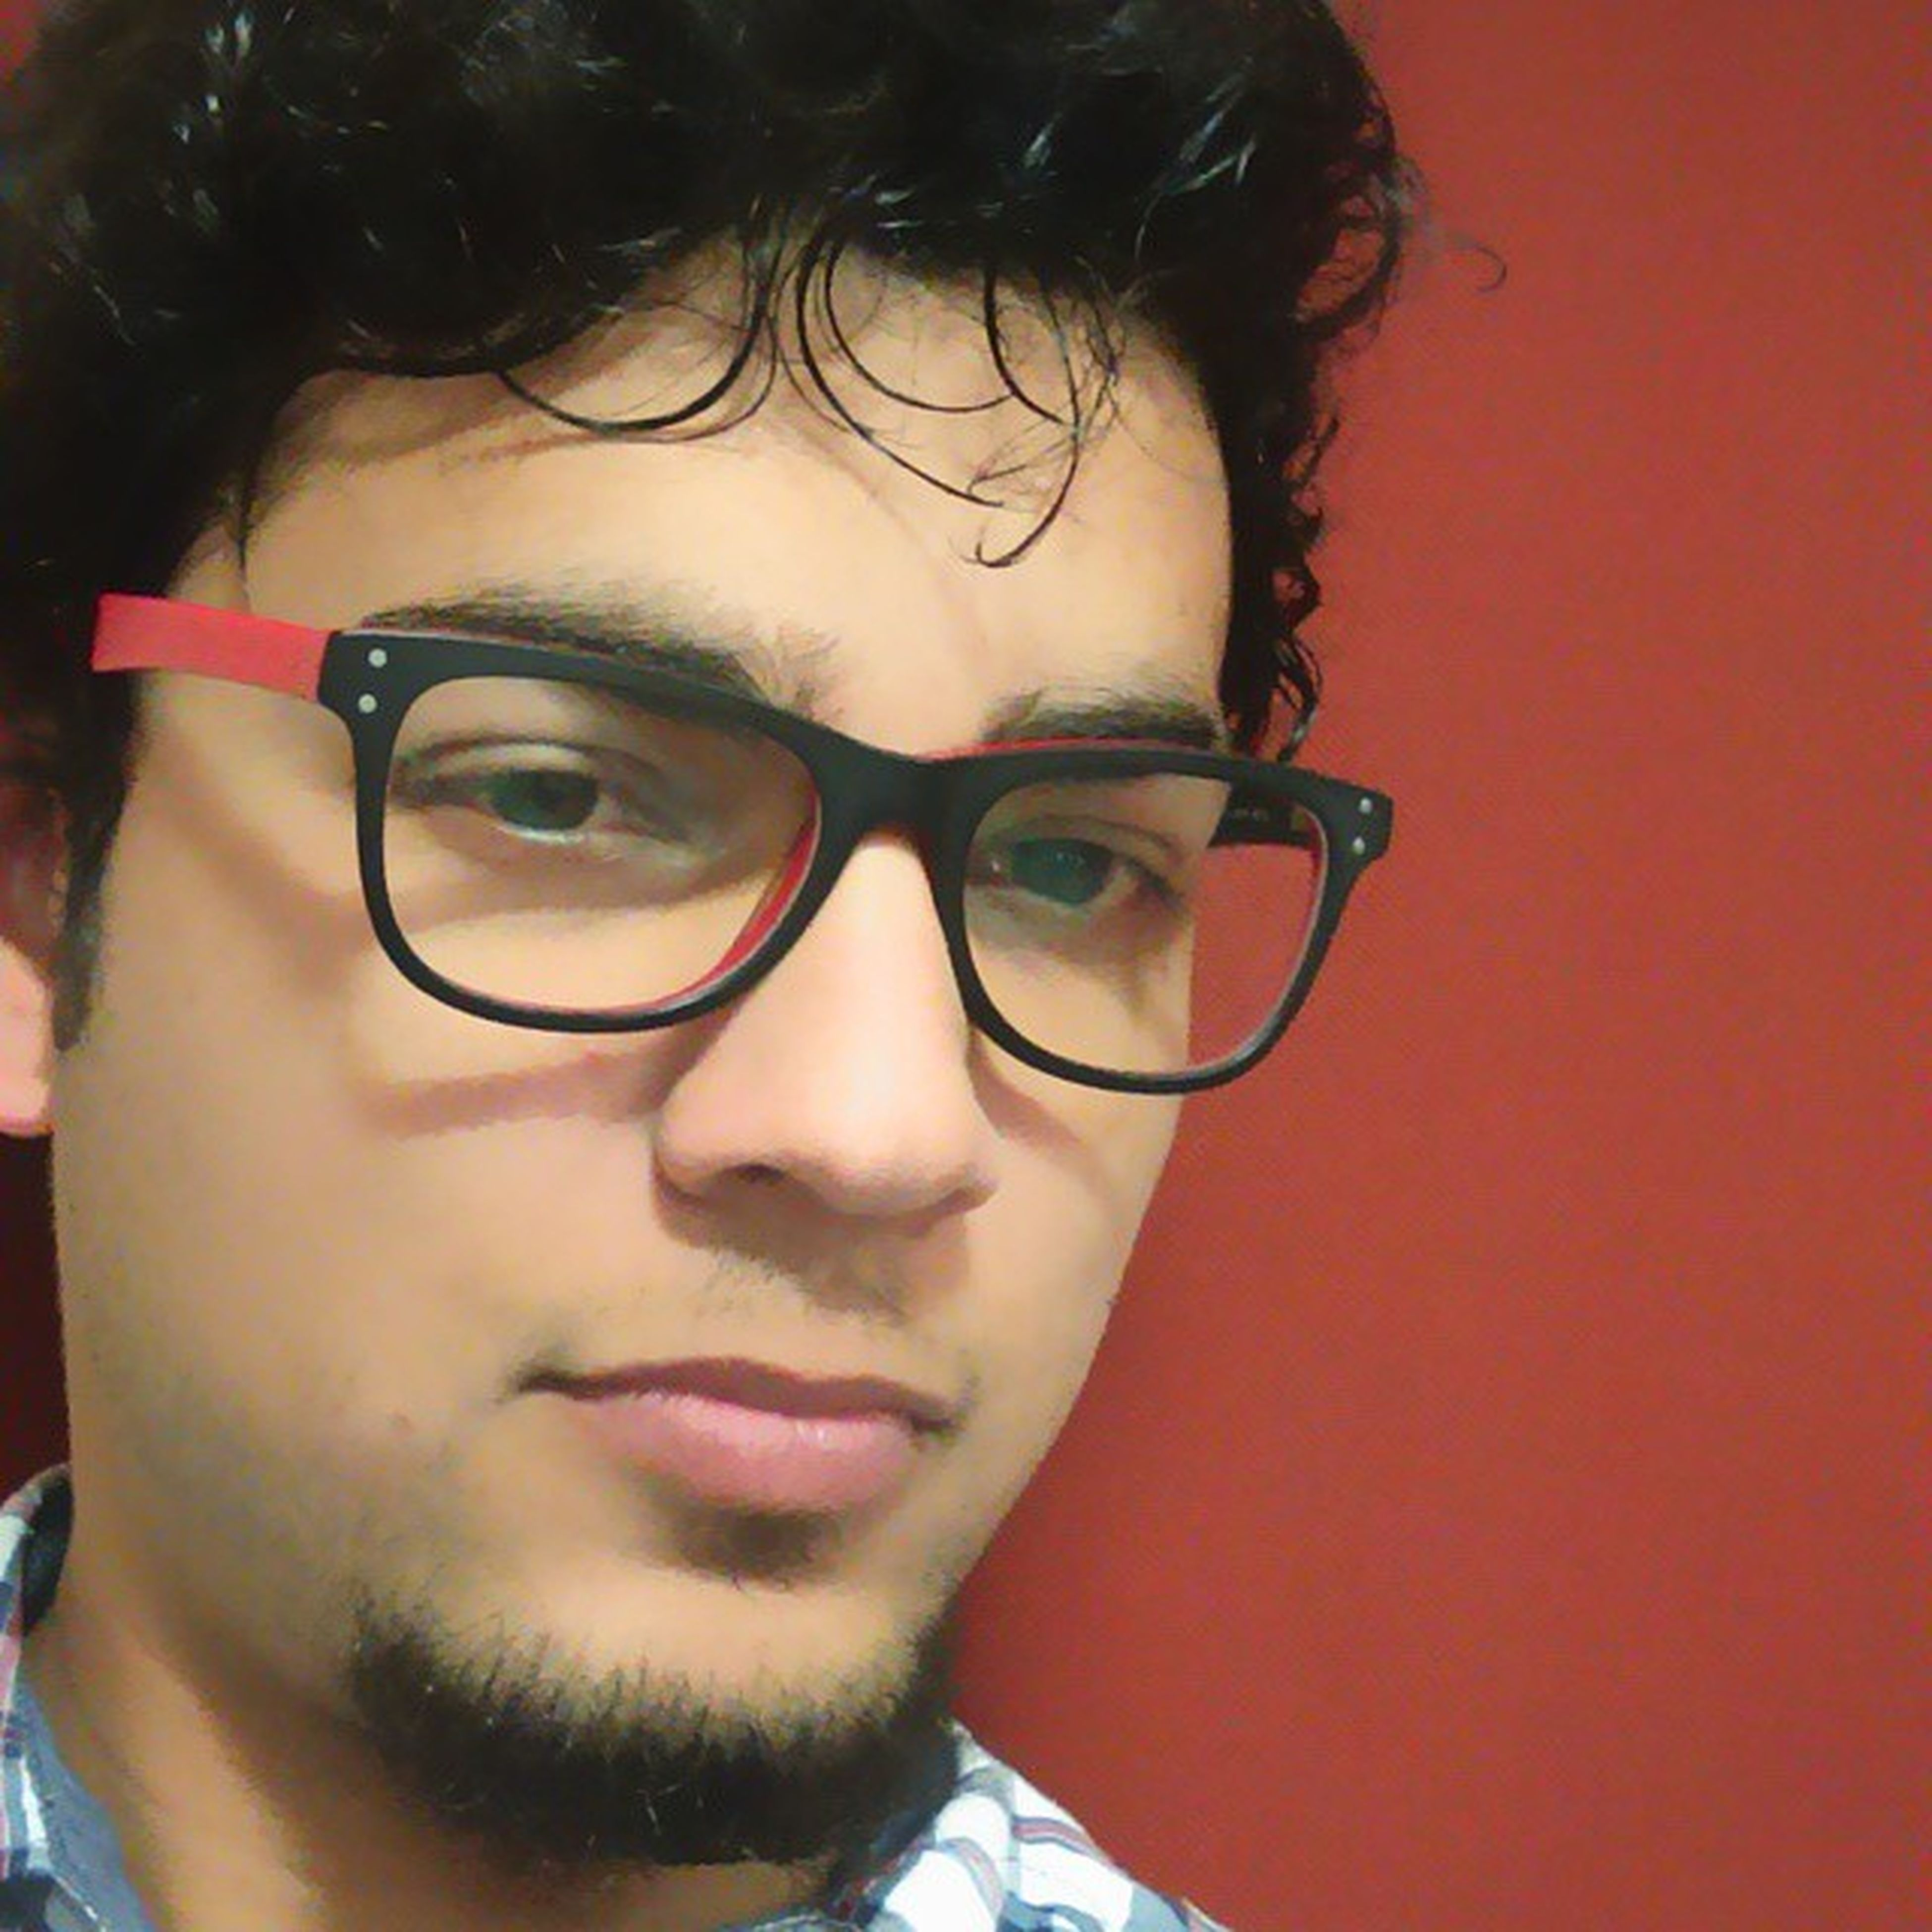 looking at camera, portrait, young adult, person, headshot, lifestyles, front view, leisure activity, sunglasses, smiling, young men, close-up, casual clothing, head and shoulders, mid adult, human face, indoors